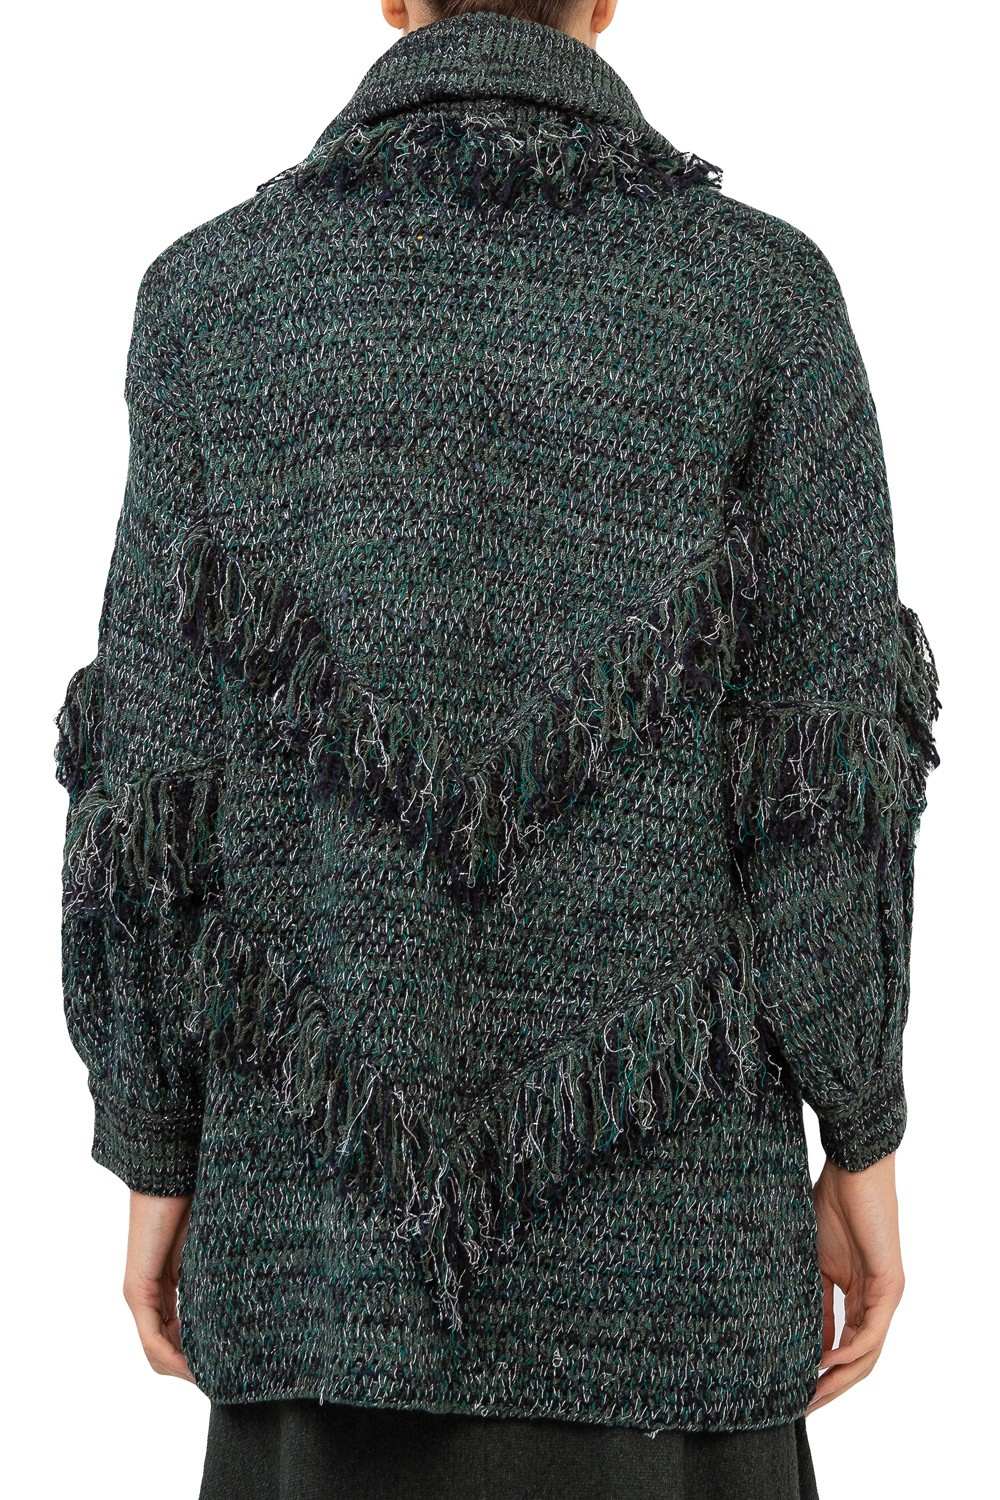 CASACO TRICOT FOREST